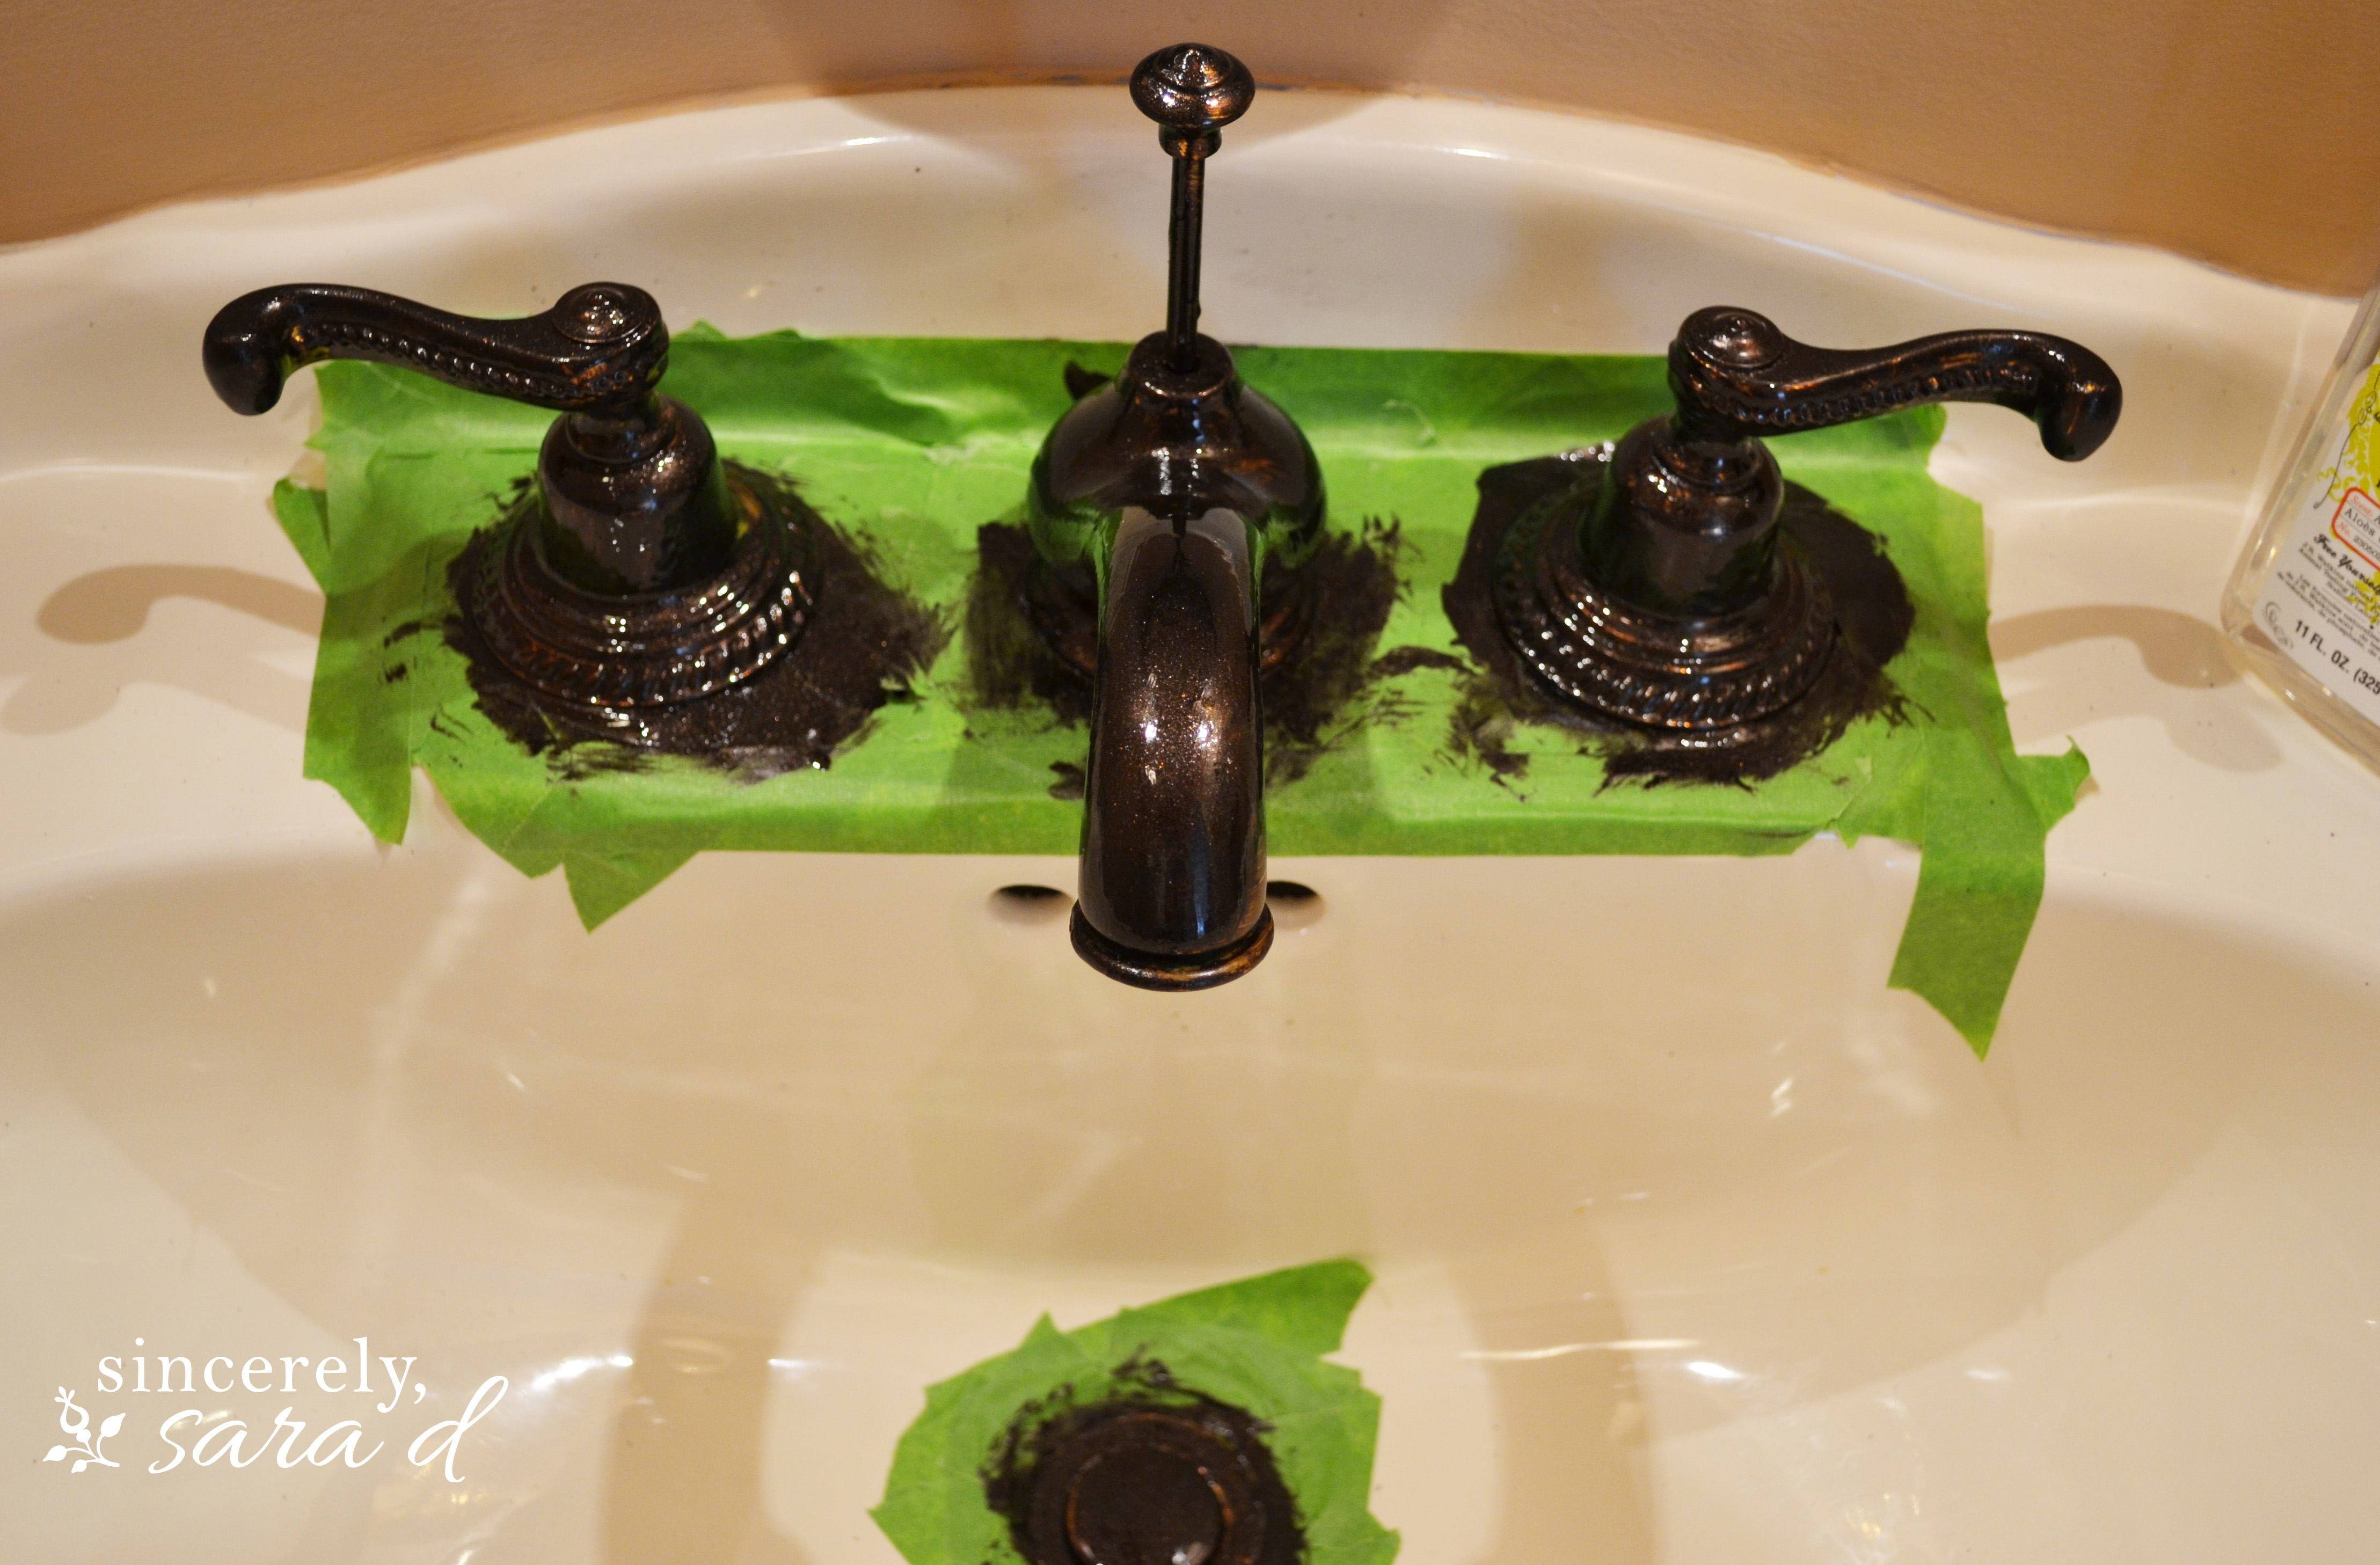 How To Paint A Faucet Sincerely Sara D